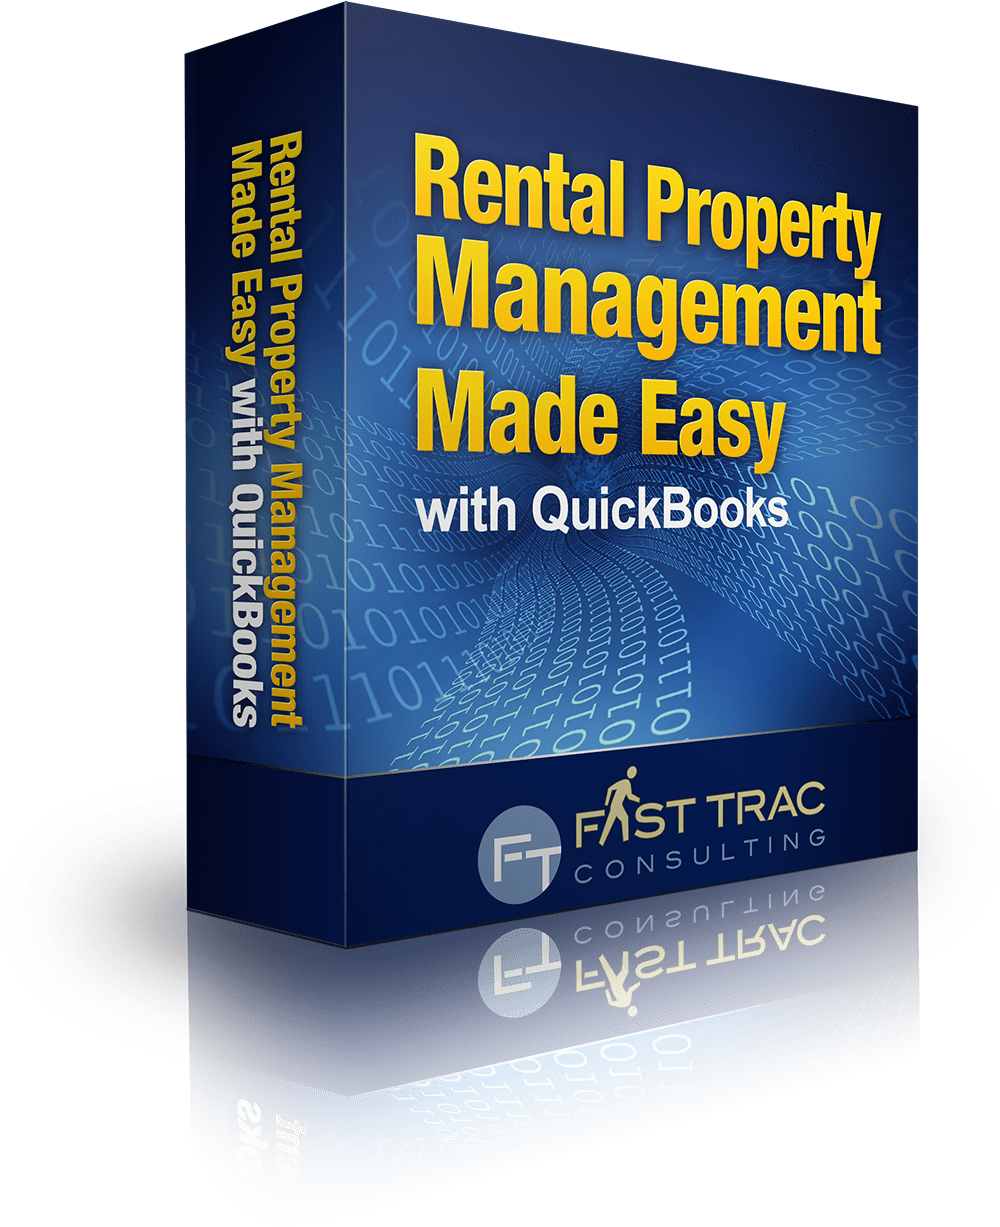 rental property management made easy quickbooks